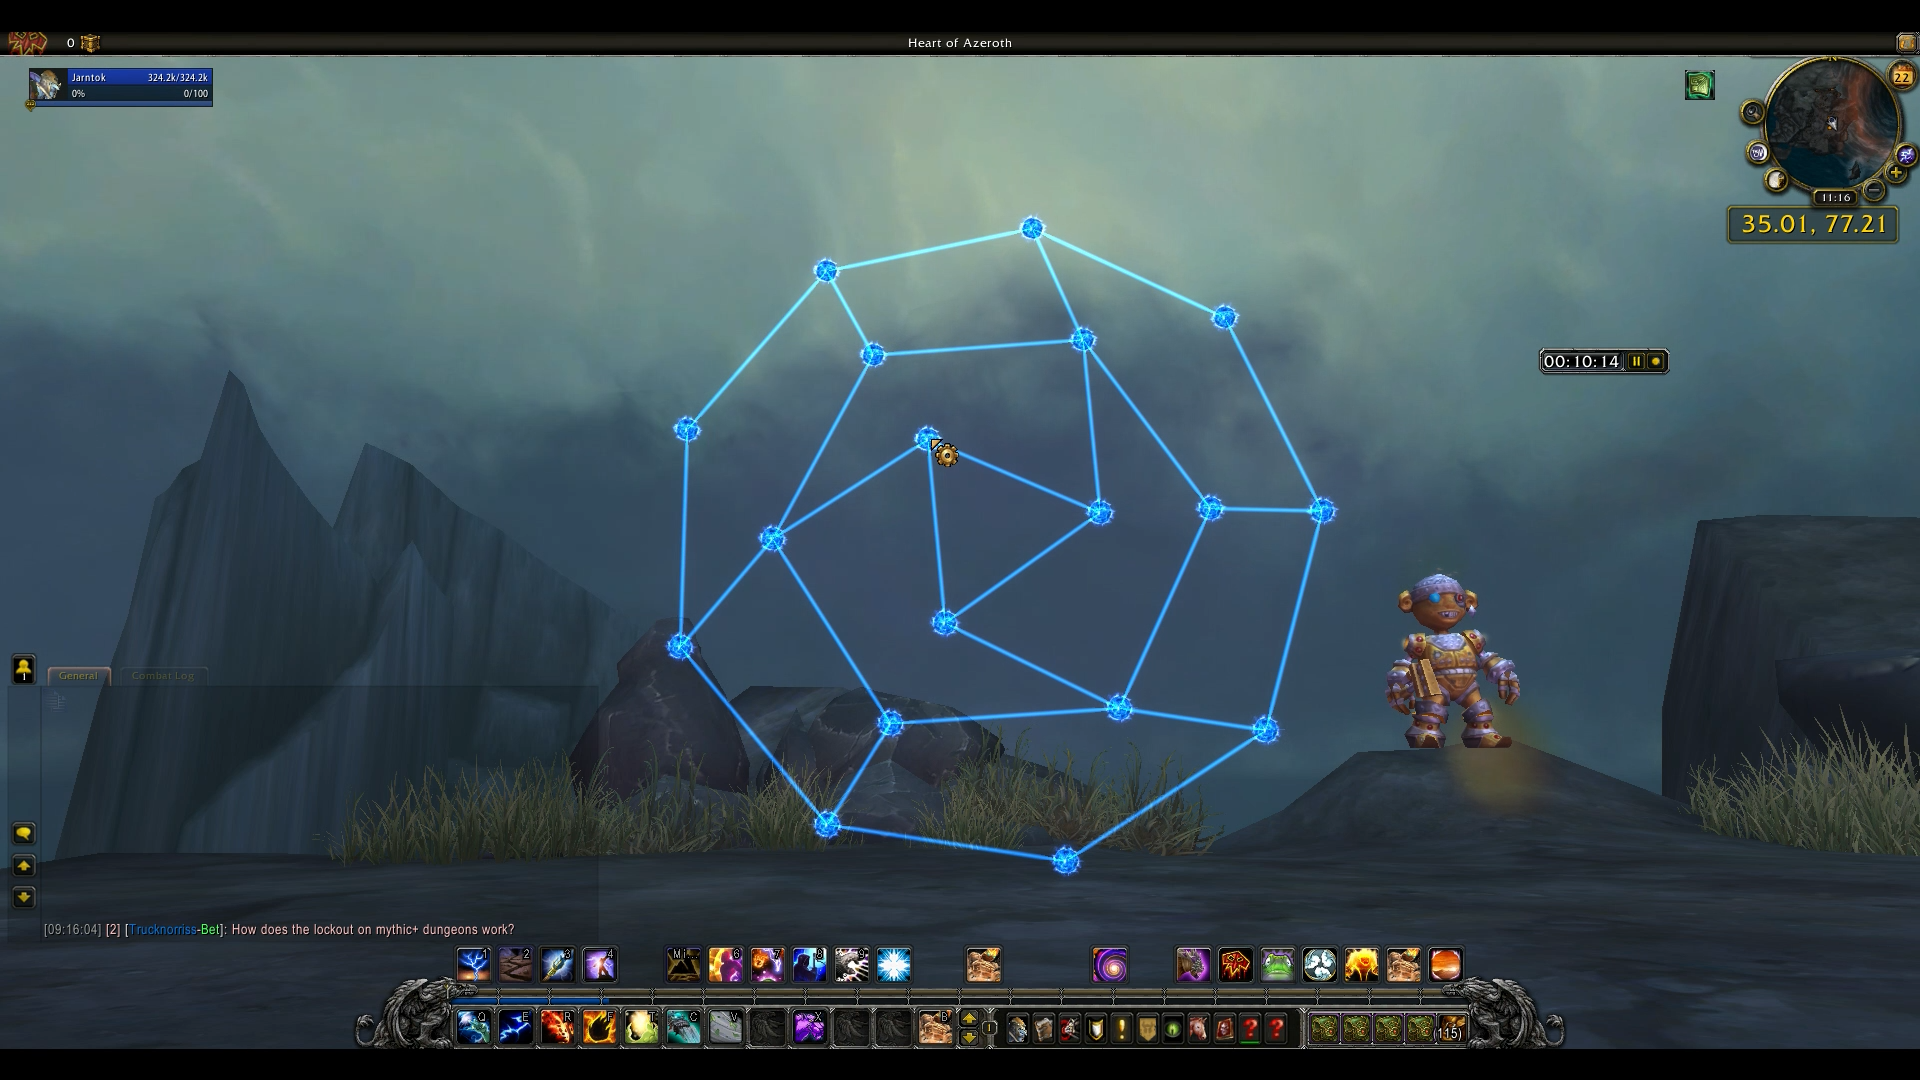 The Shortest Distance Achievement World Of Warcraft Game Circuits 18 3 Circles